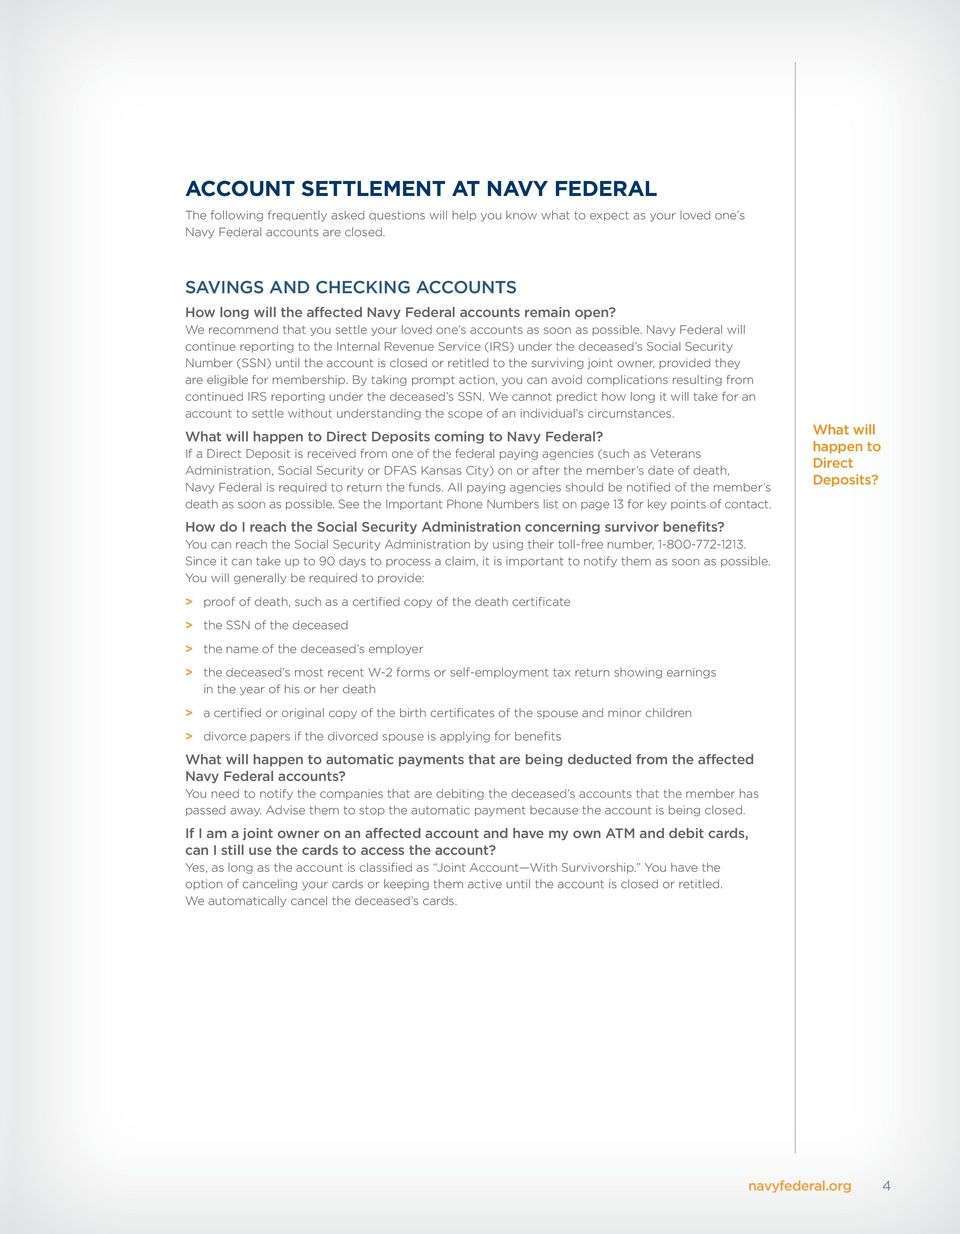 Navy Federal will continue reporting to the Internal Revenue Service (IRS) under the deceased s Social Security Number (SSN) until the account is closed or retitled to the surviving joint owner,